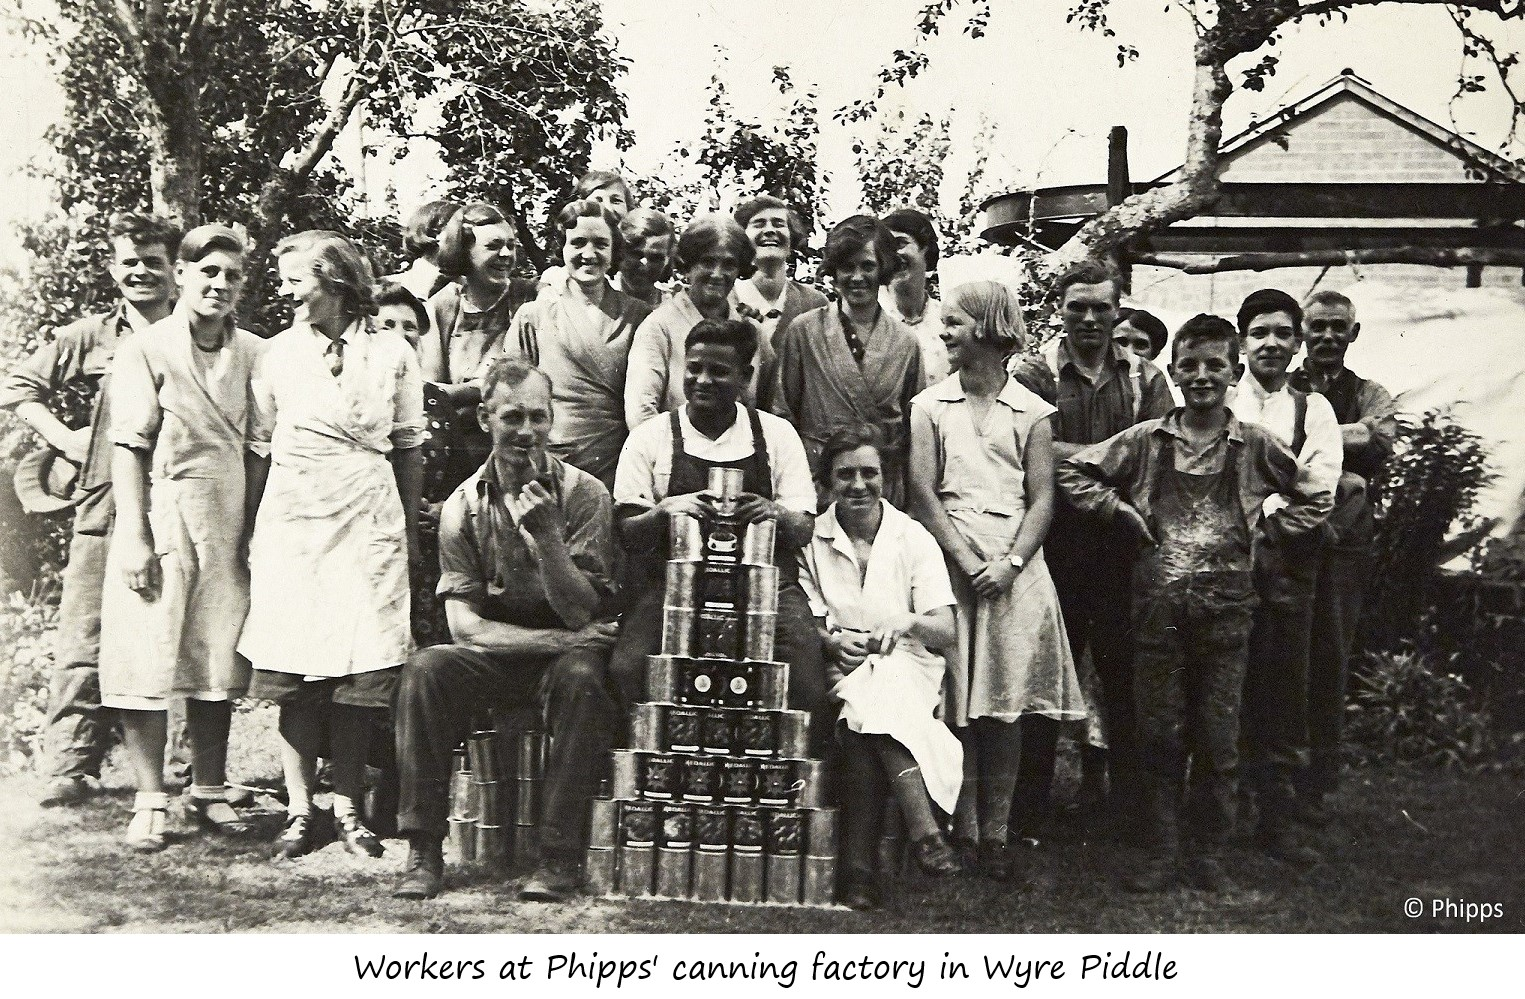 Workers at Phipps' canning factory in Wyre Piddle